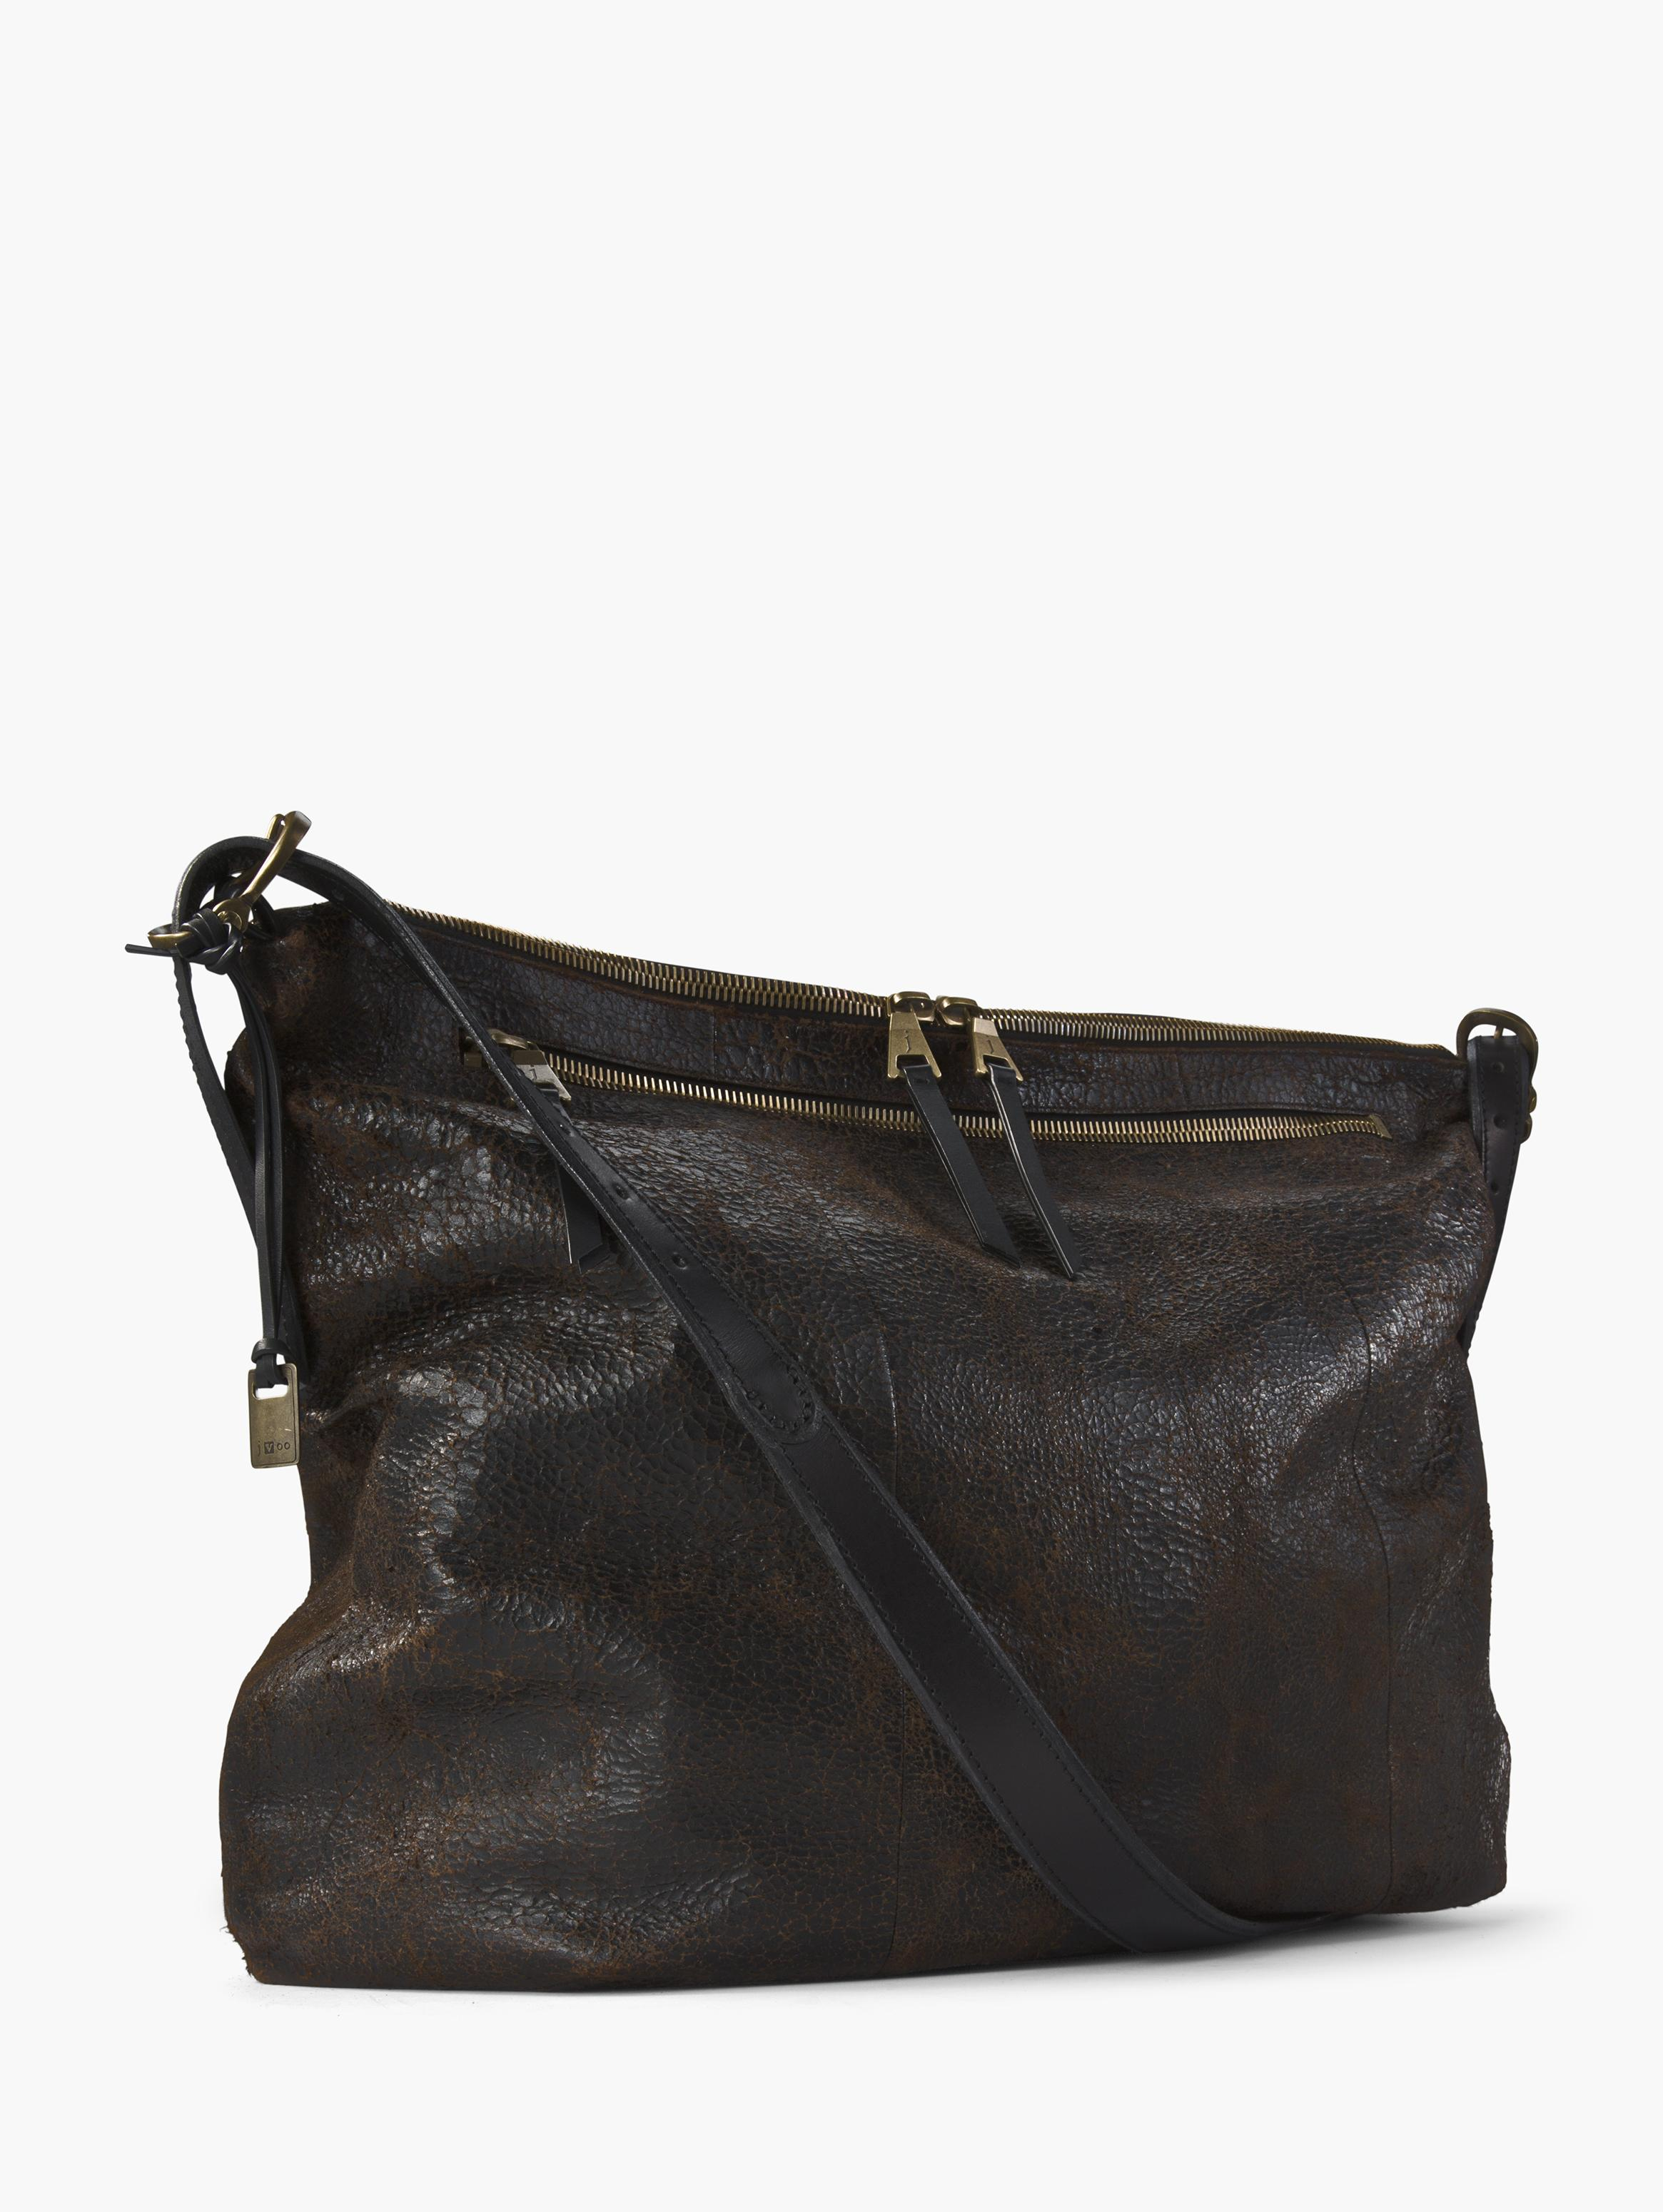 Triple Zip Crossbody Hobo